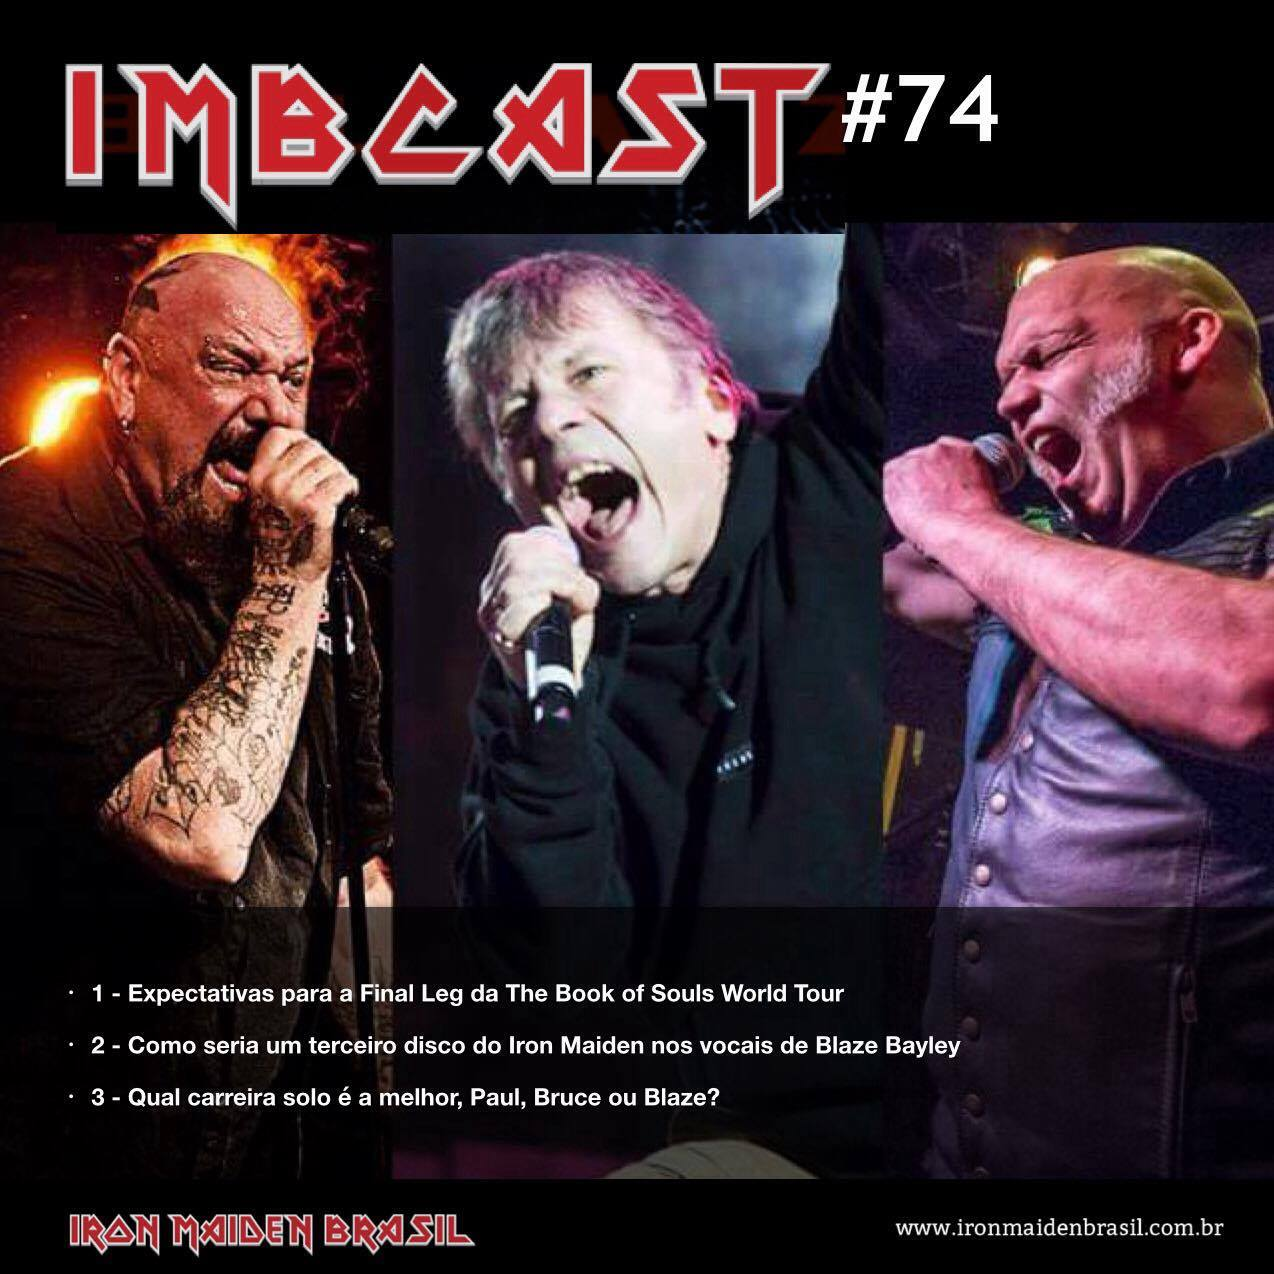 [PODCAST] - IMBCAST #74